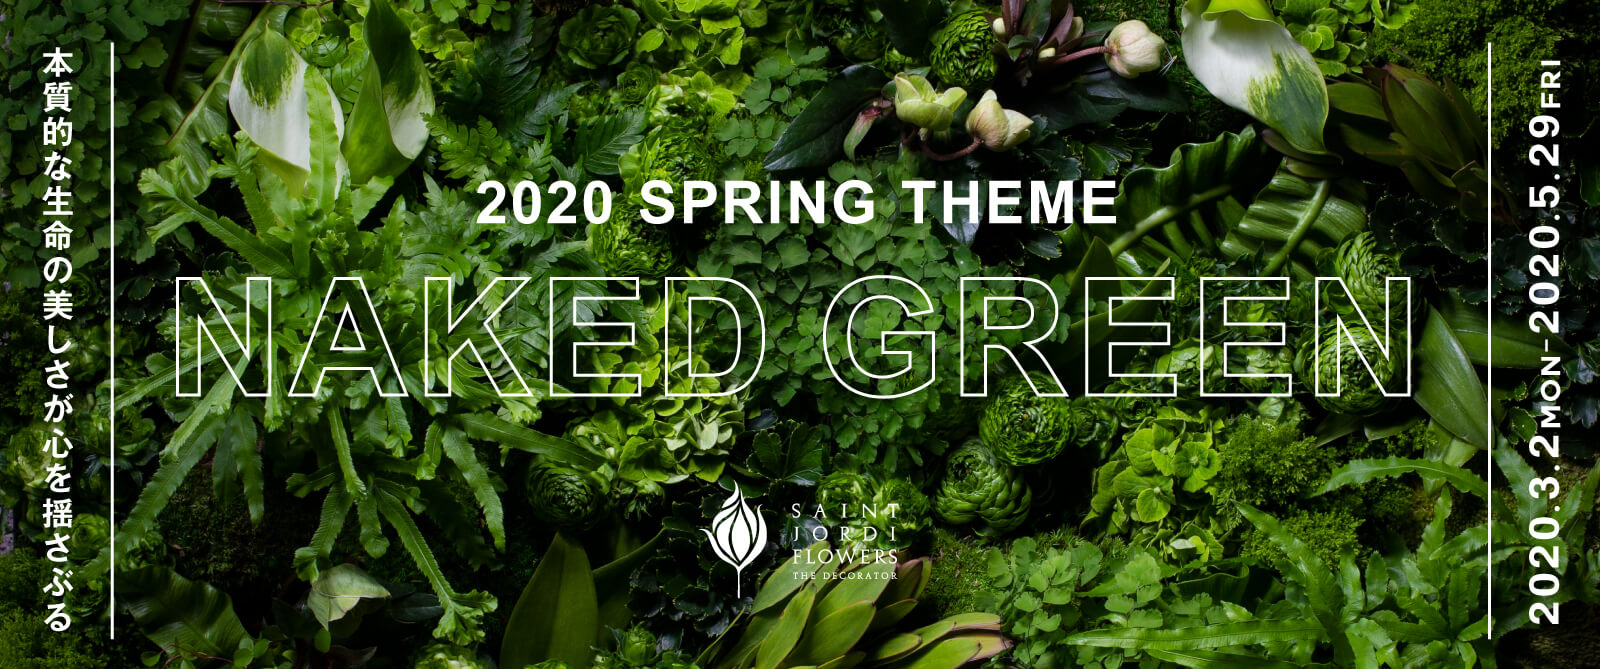 NAKED GREEN / 2020 Spring theme